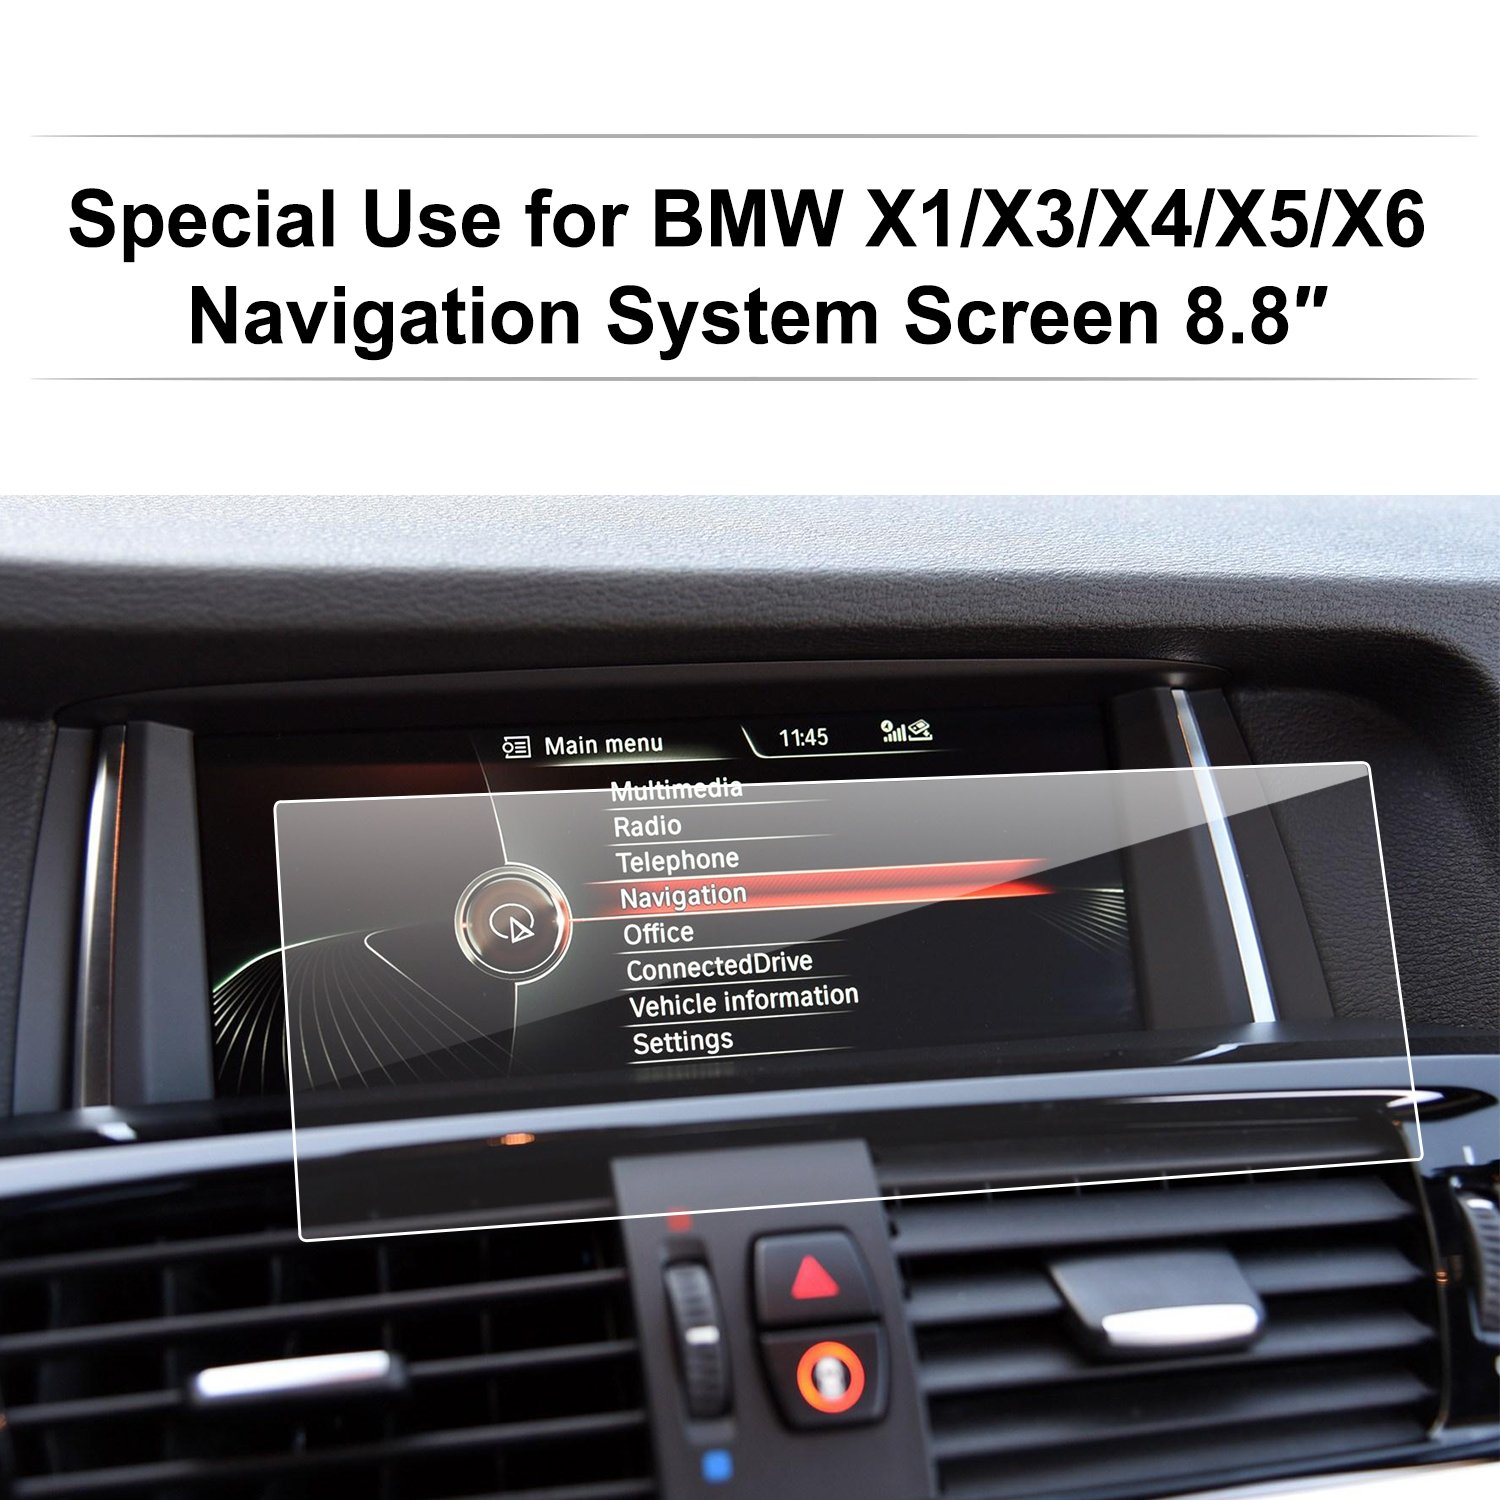 LFOTPP Compatible Tempered Glass Navigation Infotainment Center Touch Screen Protector Replacement for BMW X1 X3 X4 X5 X6M40i 8.8-Inch Screen, If Applicable